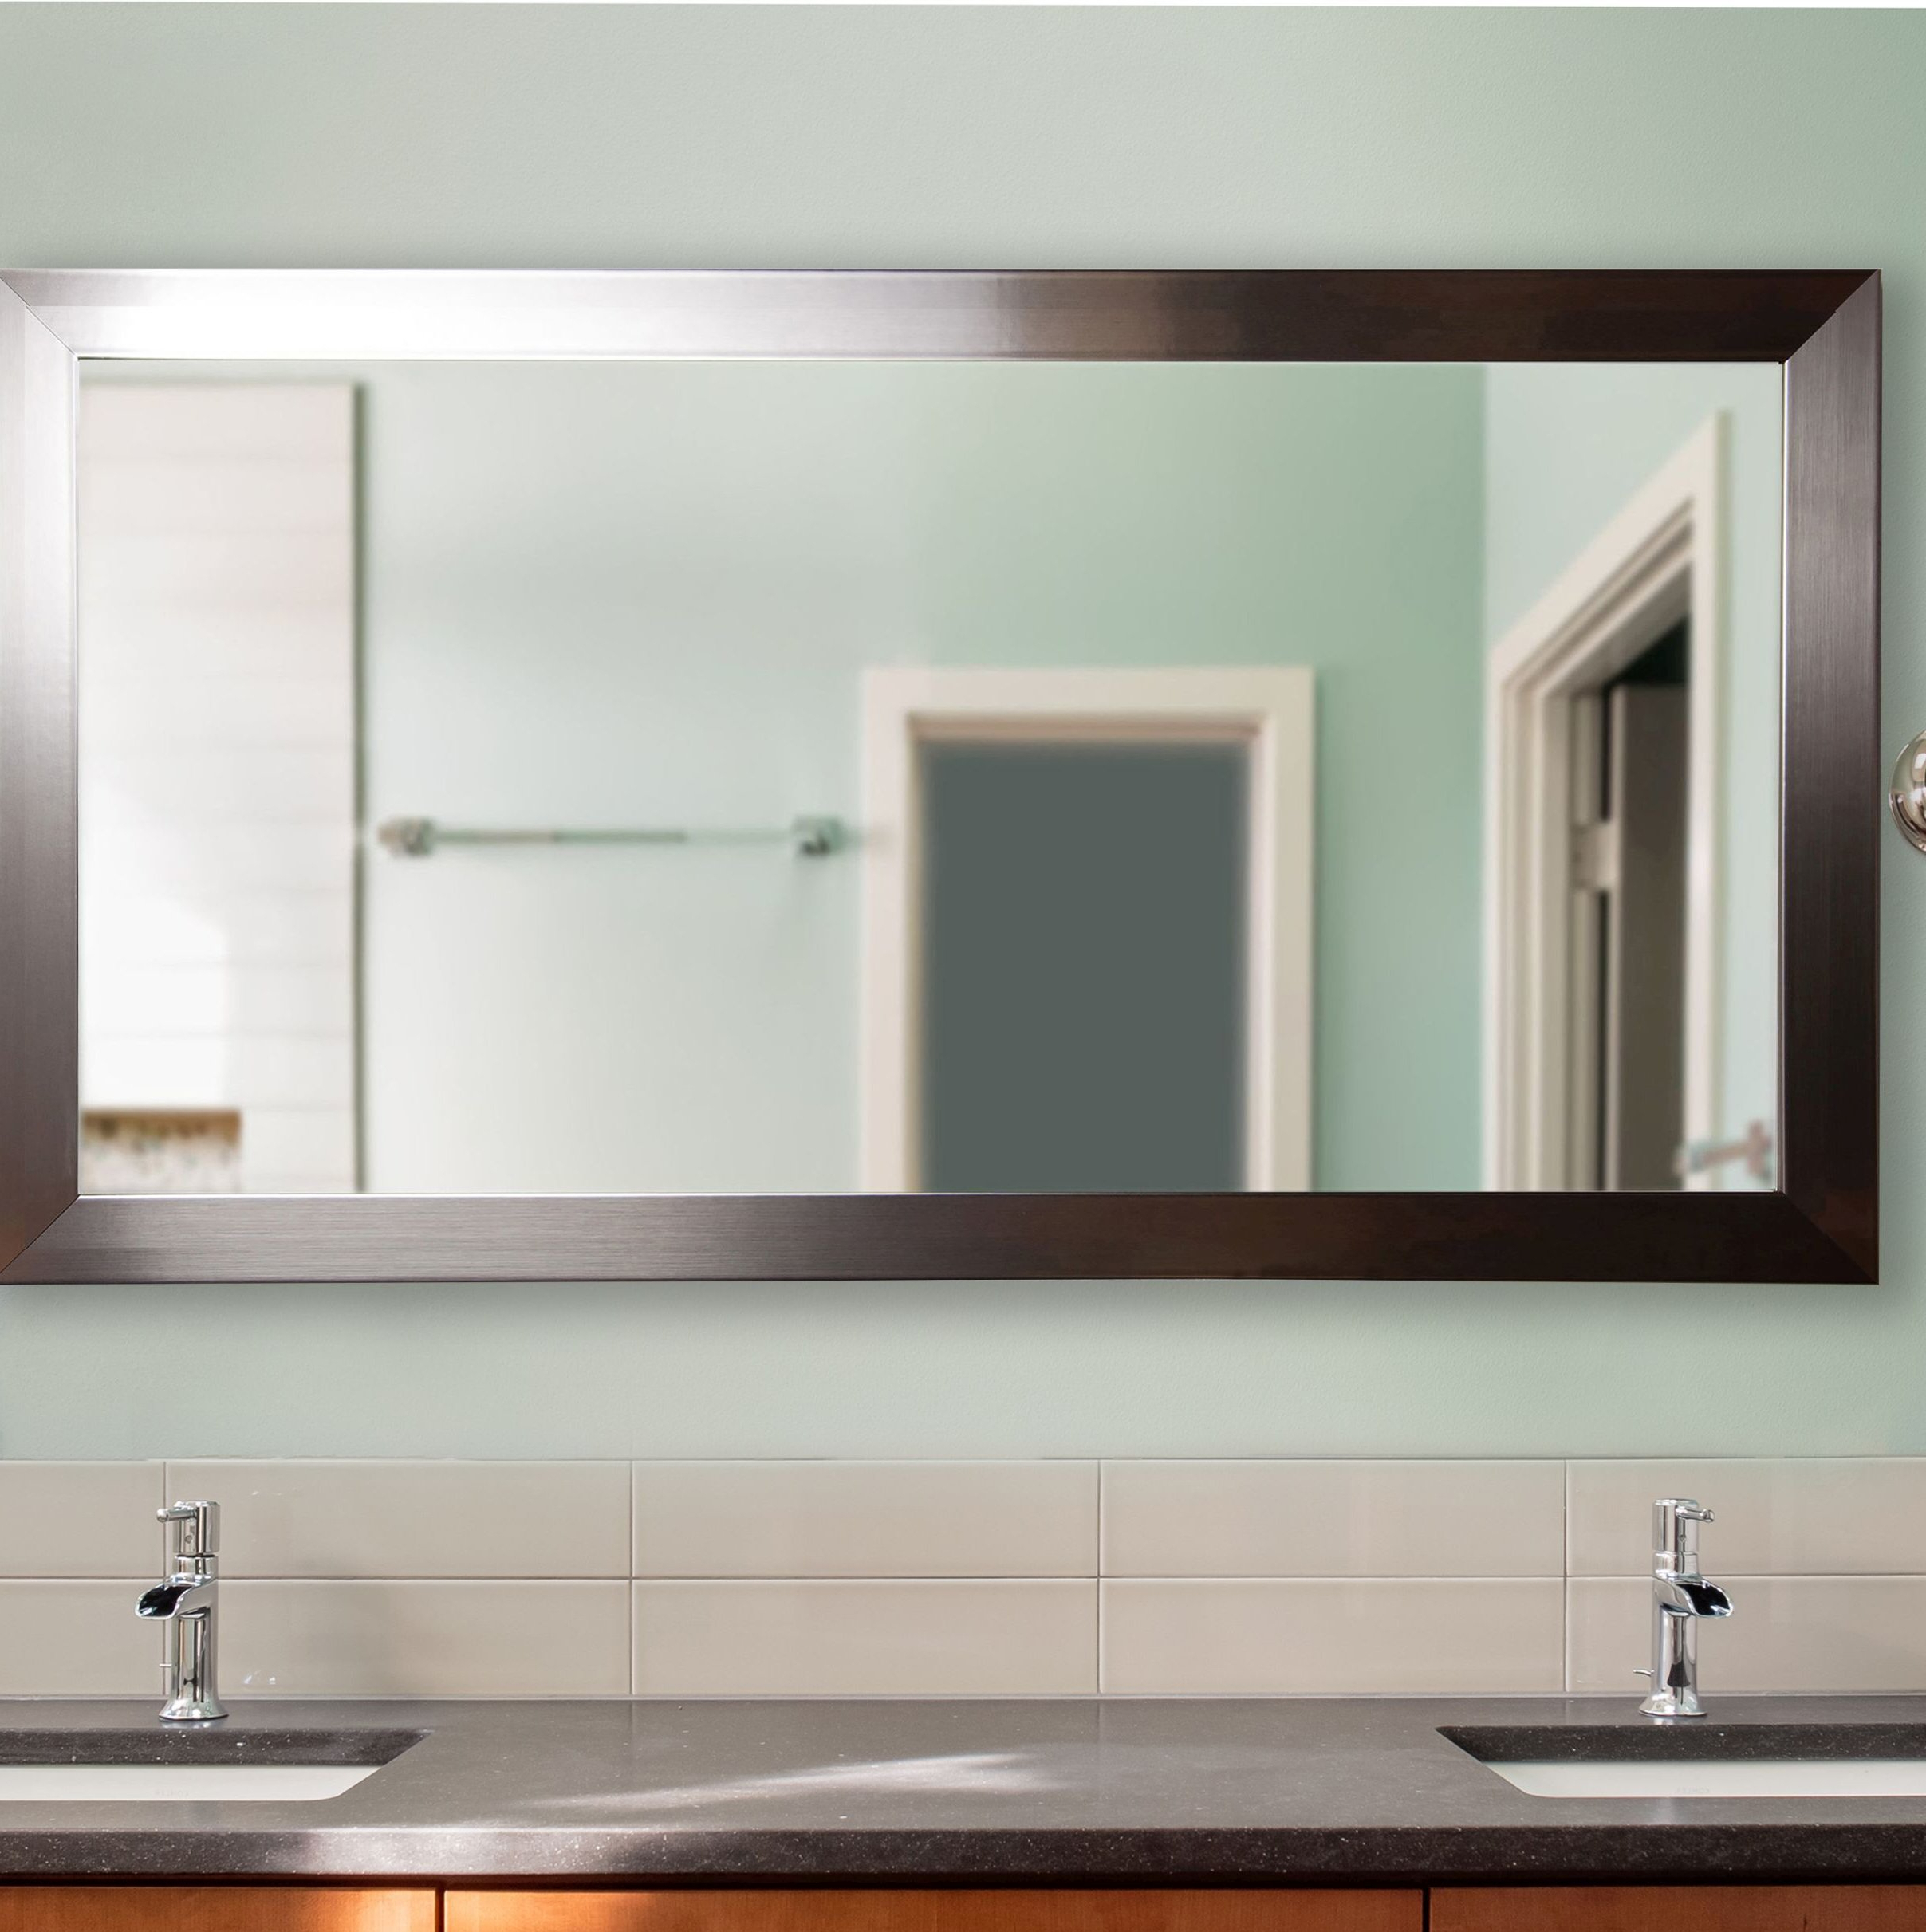 Petite Double Vanity Wall Mirror With Recent Vanity Wall Mirrors (View 5 of 20)